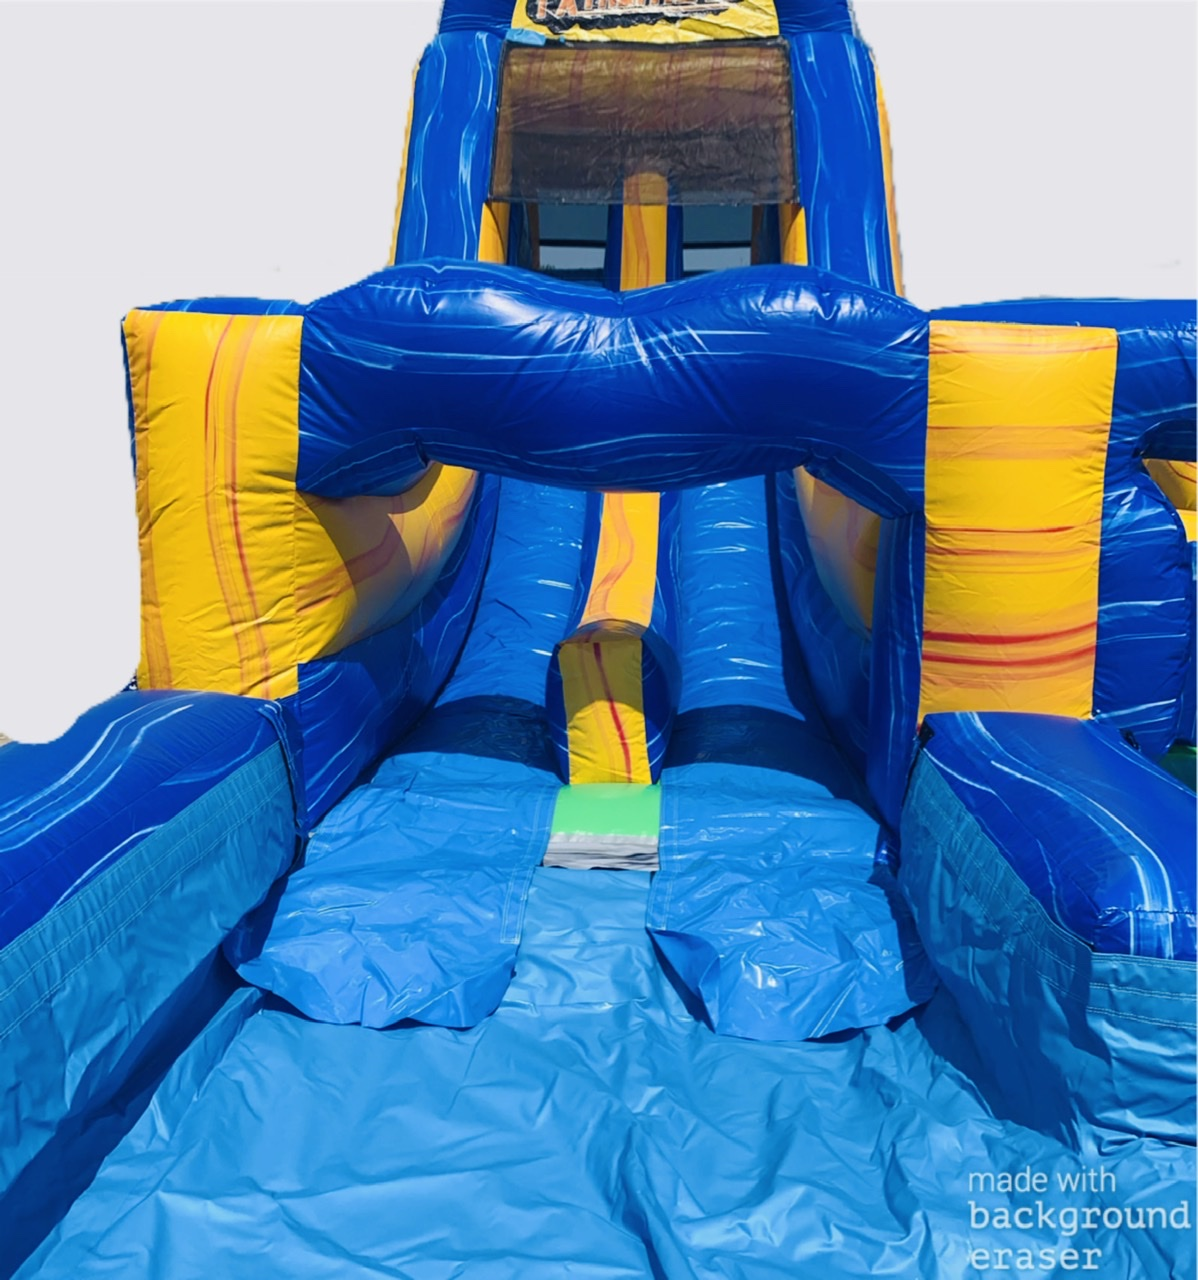 Extreme II Obstacle Dual Slide Inflatable